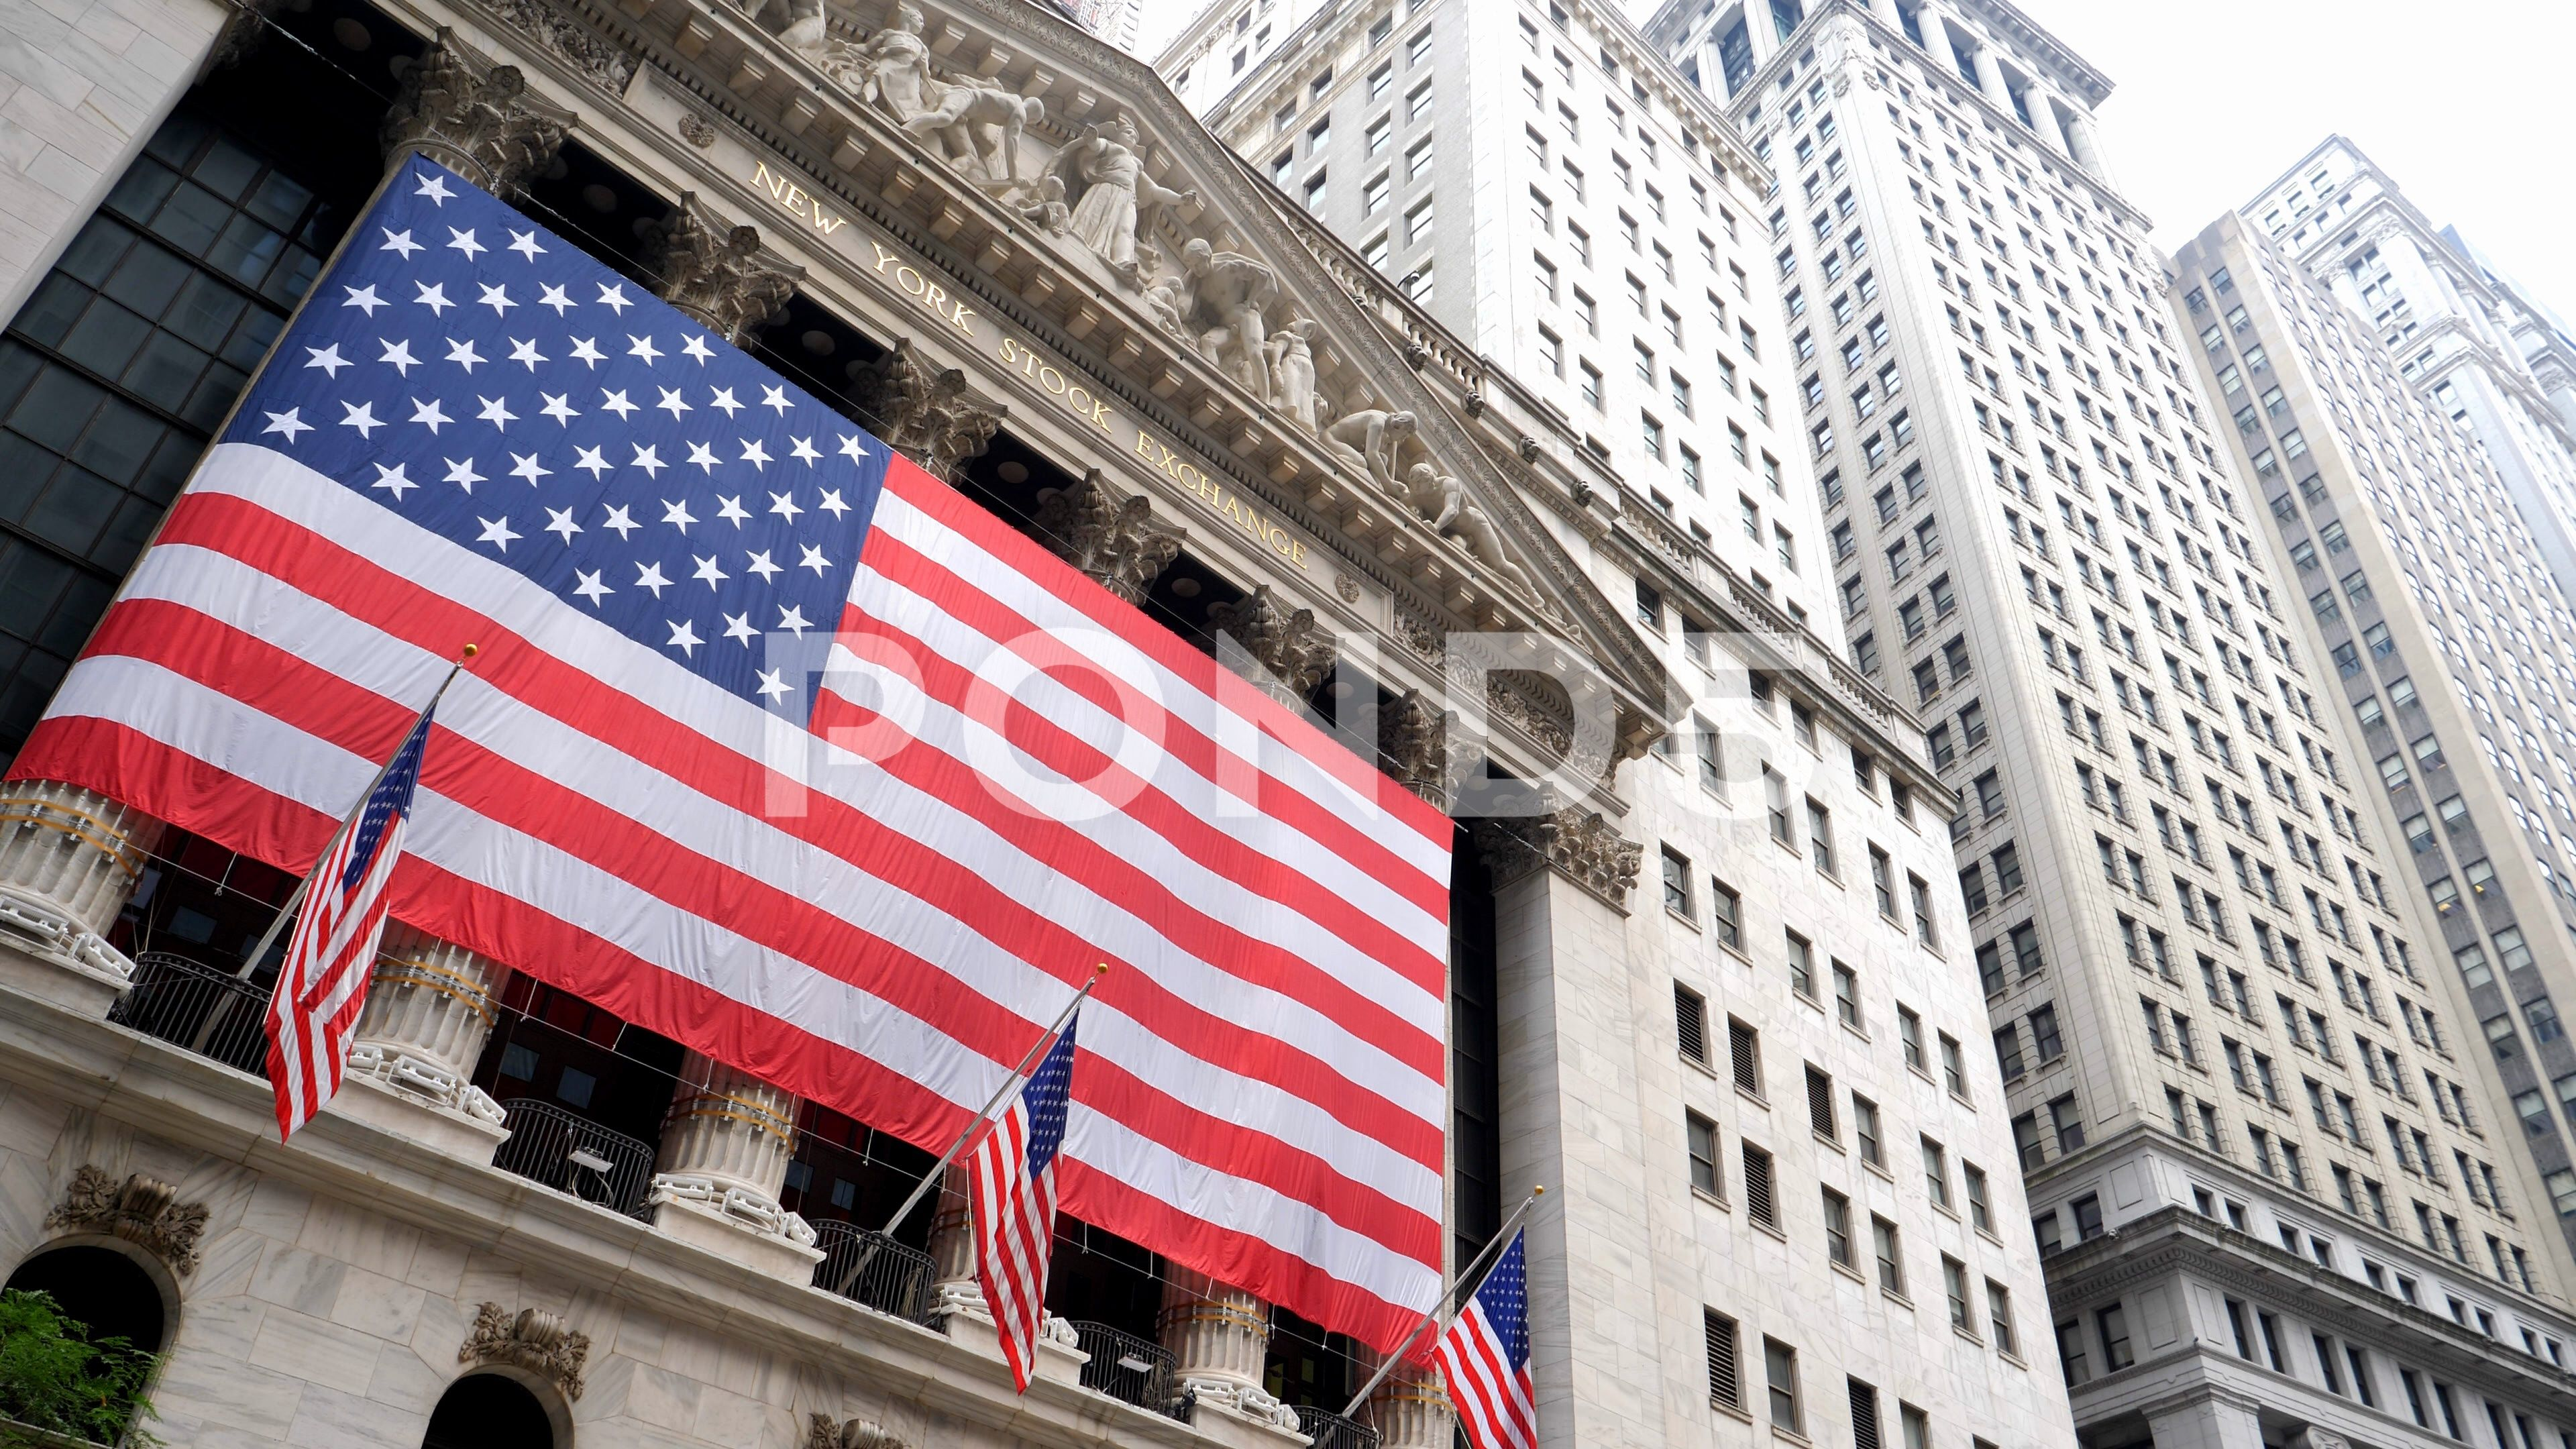 New York City Wallstreet Stock Exchange With Big American Flag Stock Footage Ad Wallstreet Stock York City New York City Wall Street Nyc York City